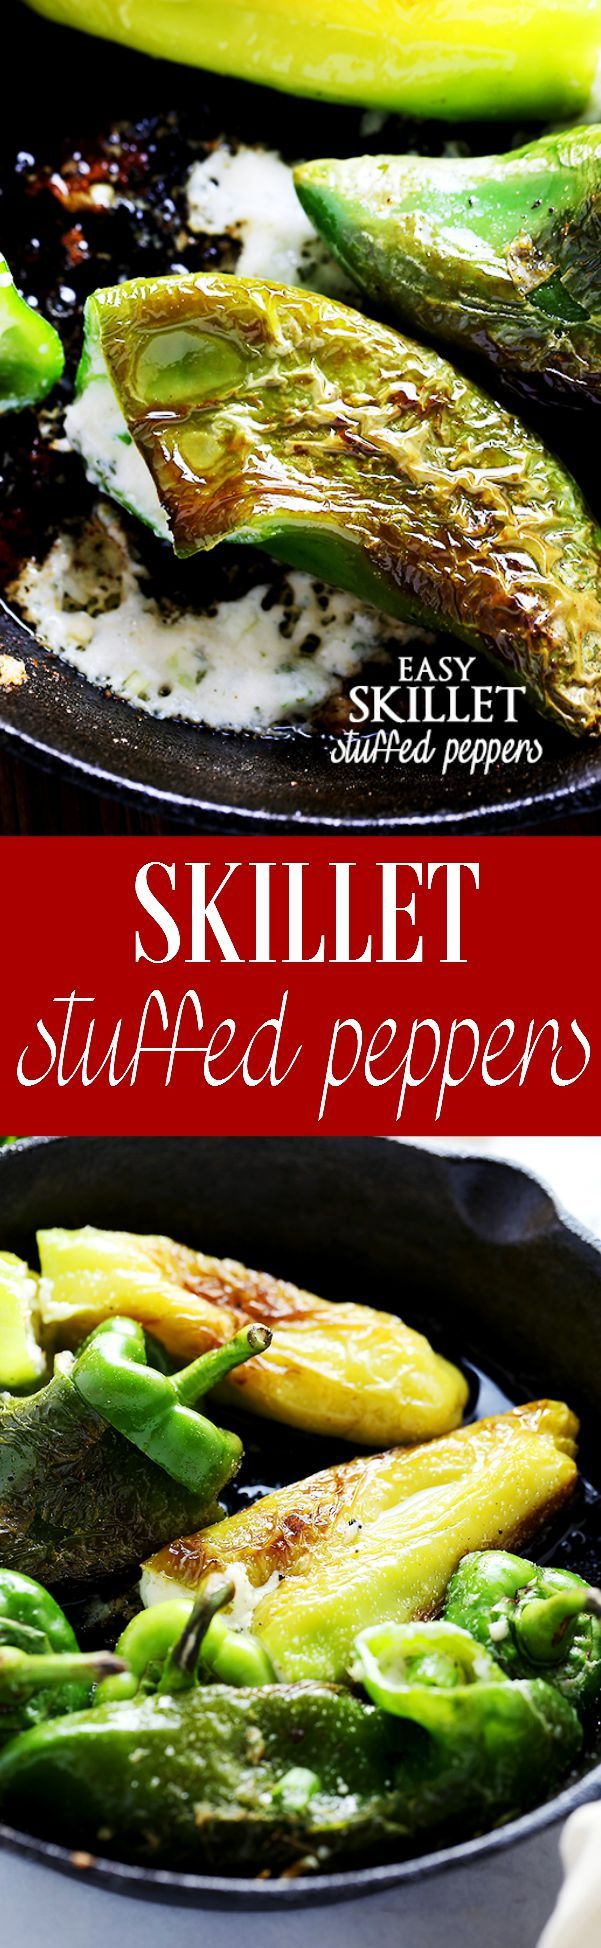 recipe: stove top stuffed peppers in tomato sauce [29]